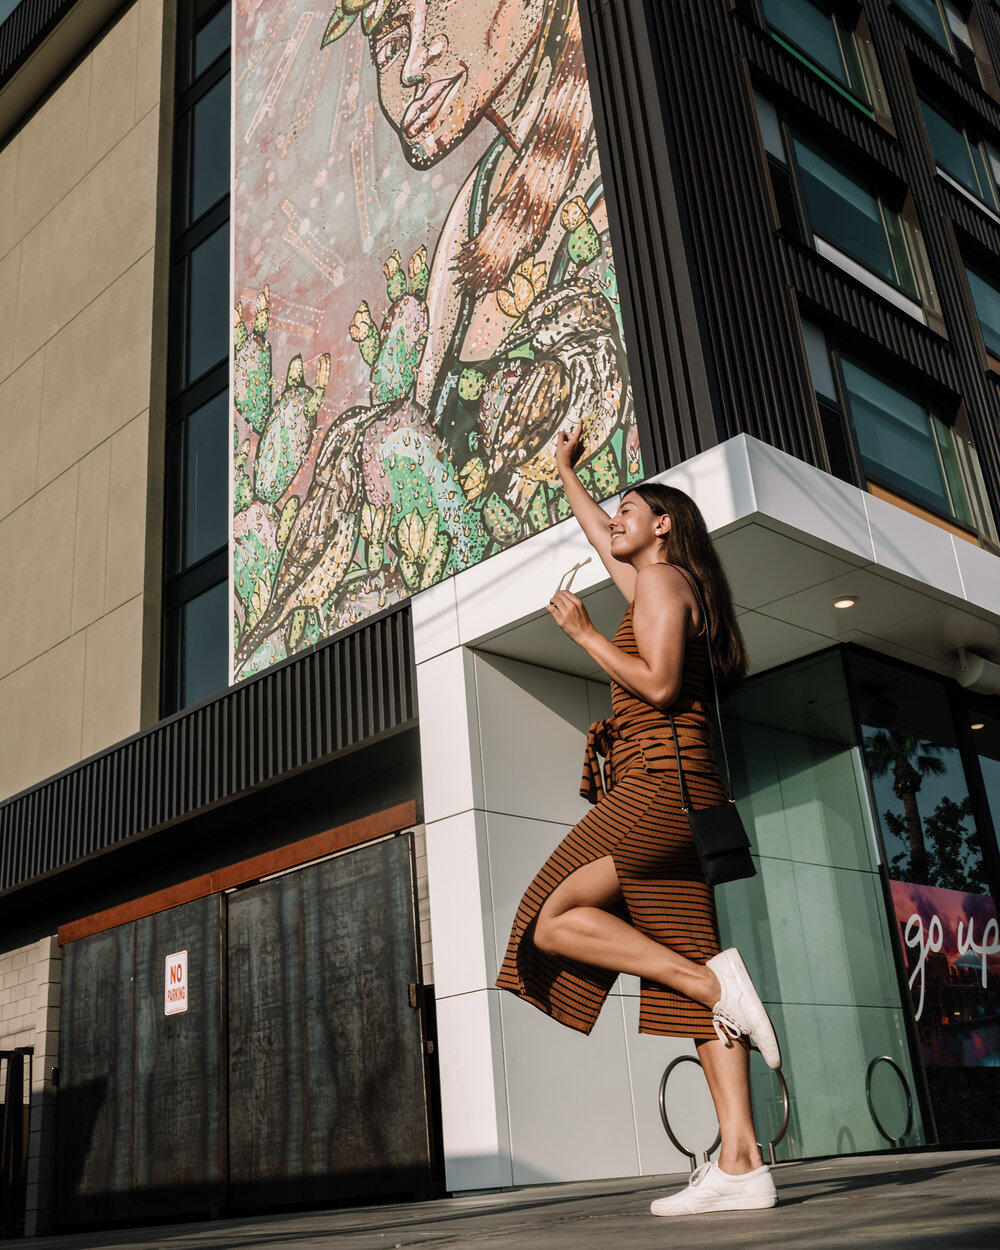 Rachel Off Duty: A Woman Posing in Front of the Exterior Murals at the Cambria Hotel in Phoenix, Arizona